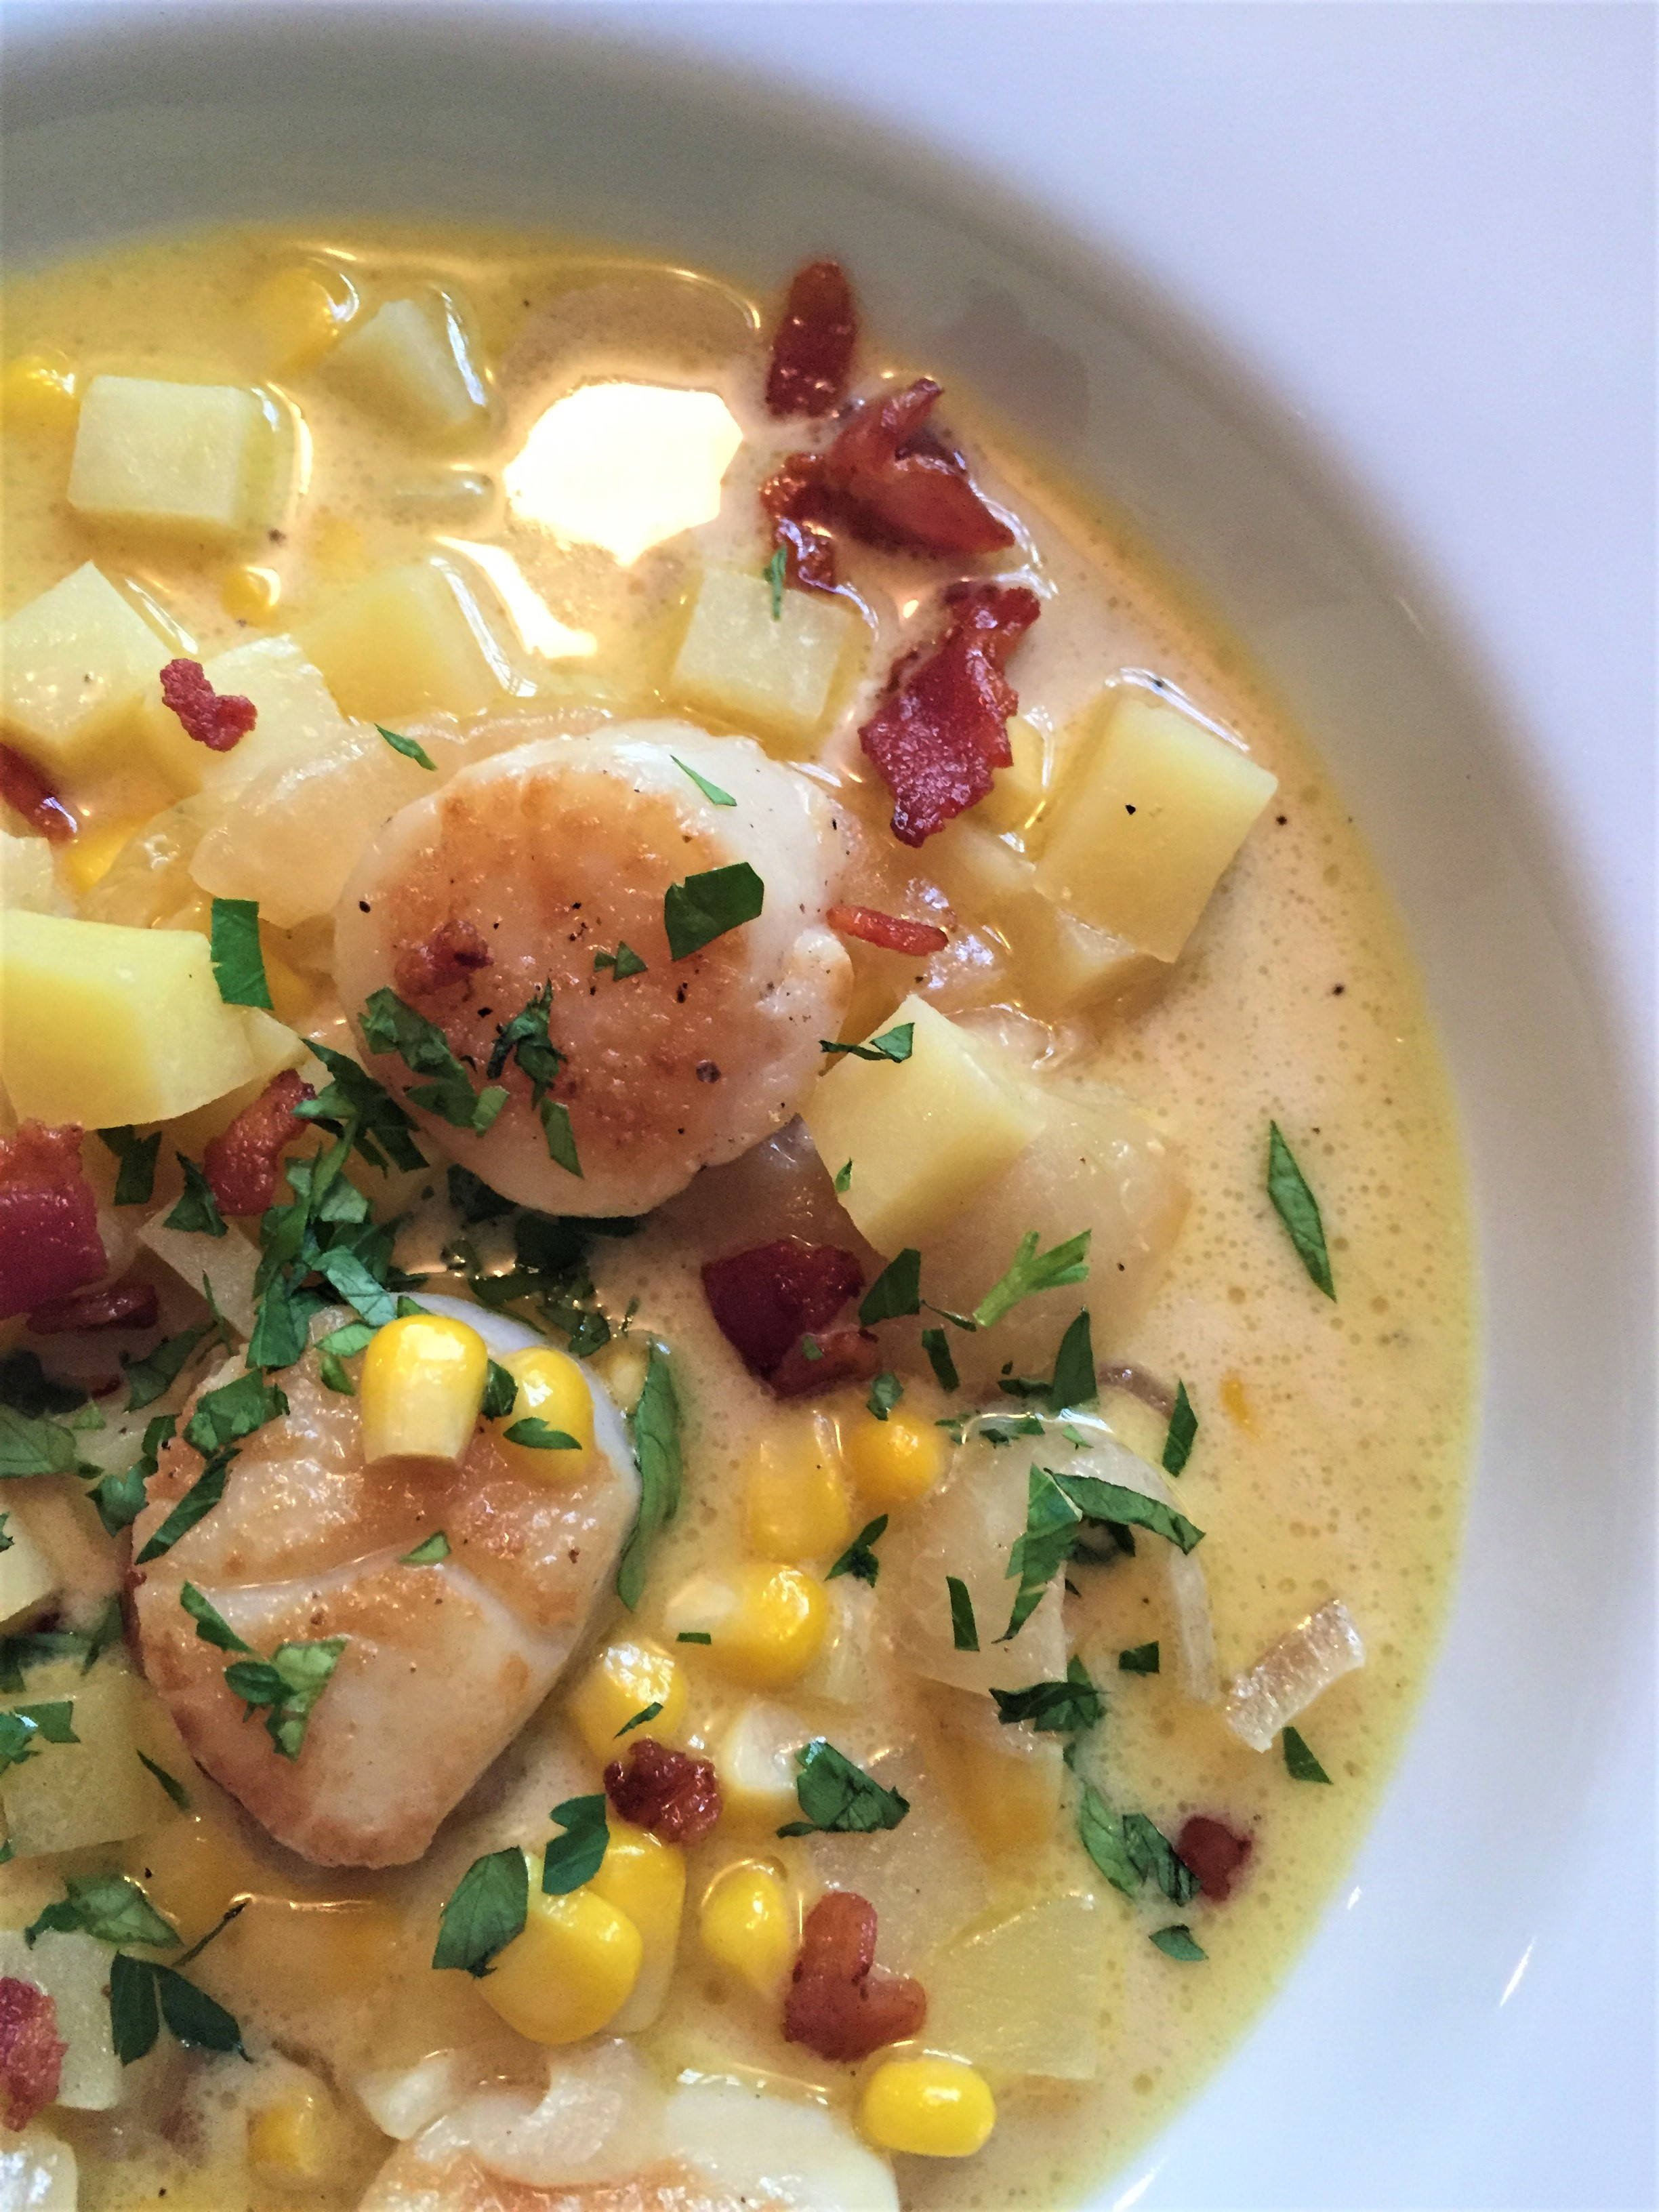 IMG_5807-scallop-corn-chowder-soup (2).JPG